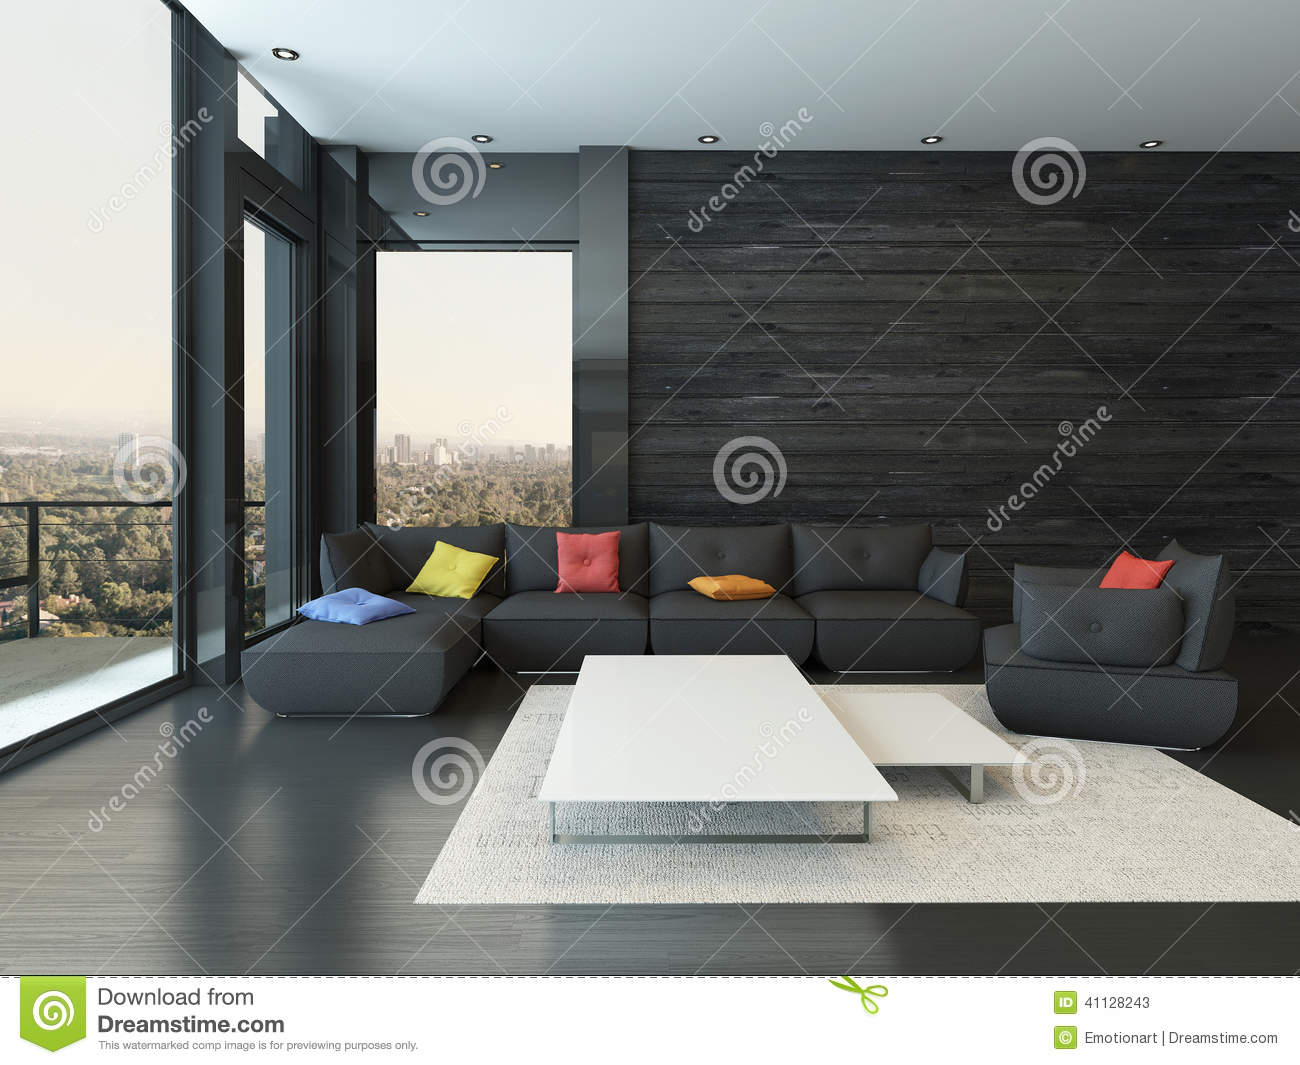 Surprising Living Room Interior With Black Couch With Colored Pillows Machost Co Dining Chair Design Ideas Machostcouk